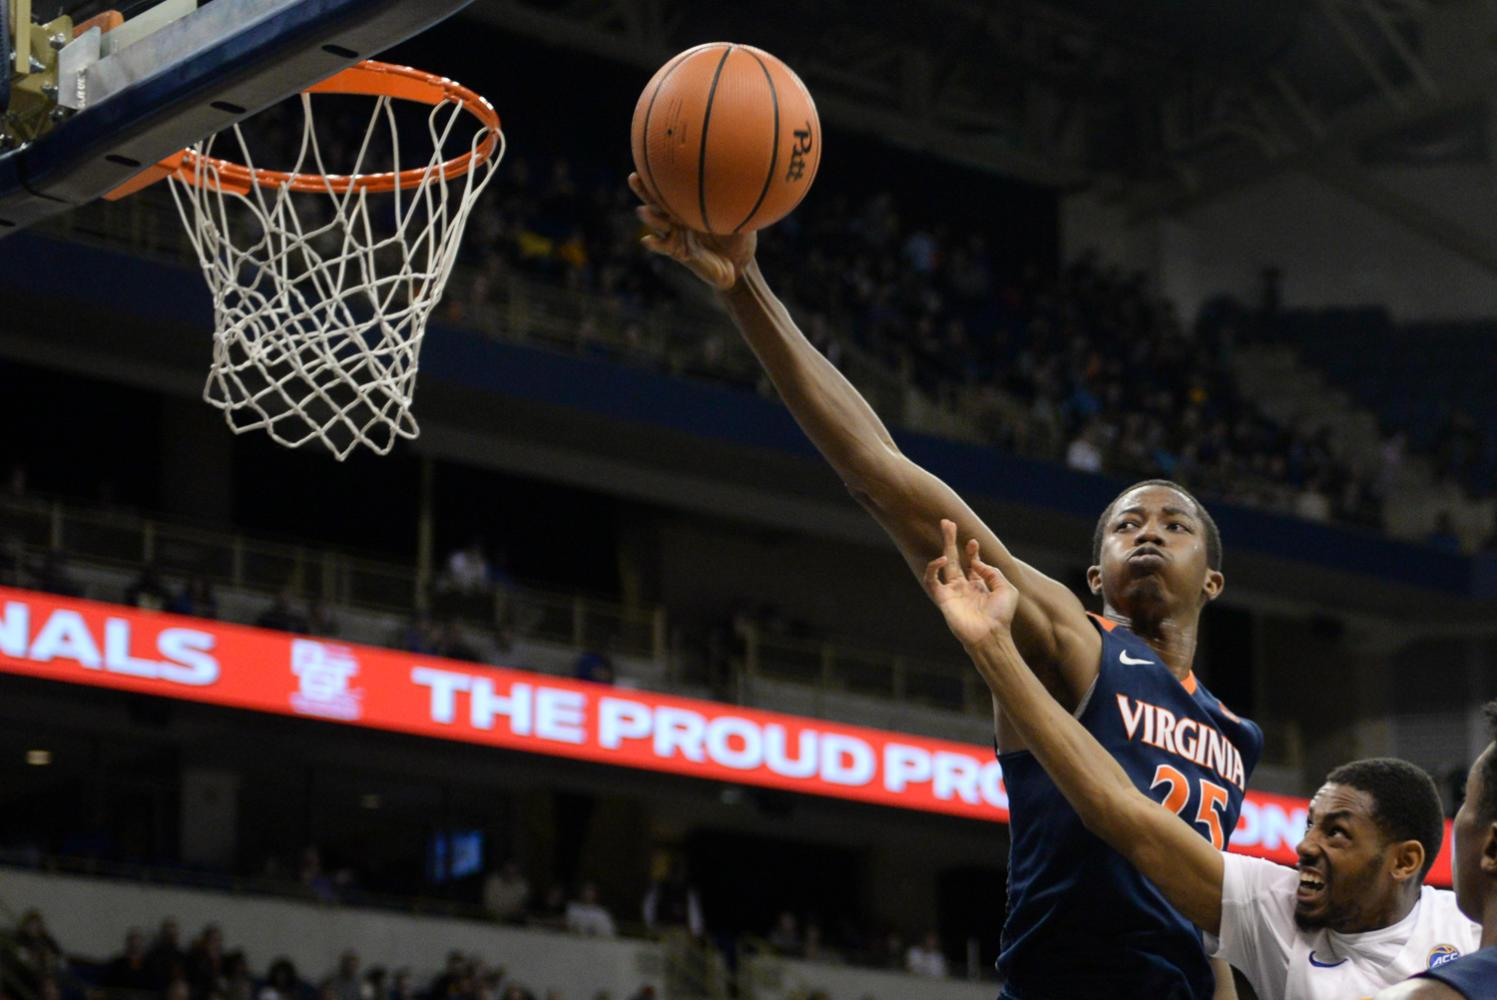 Pitt basketball scores just 7 points in first half vs. Virginia